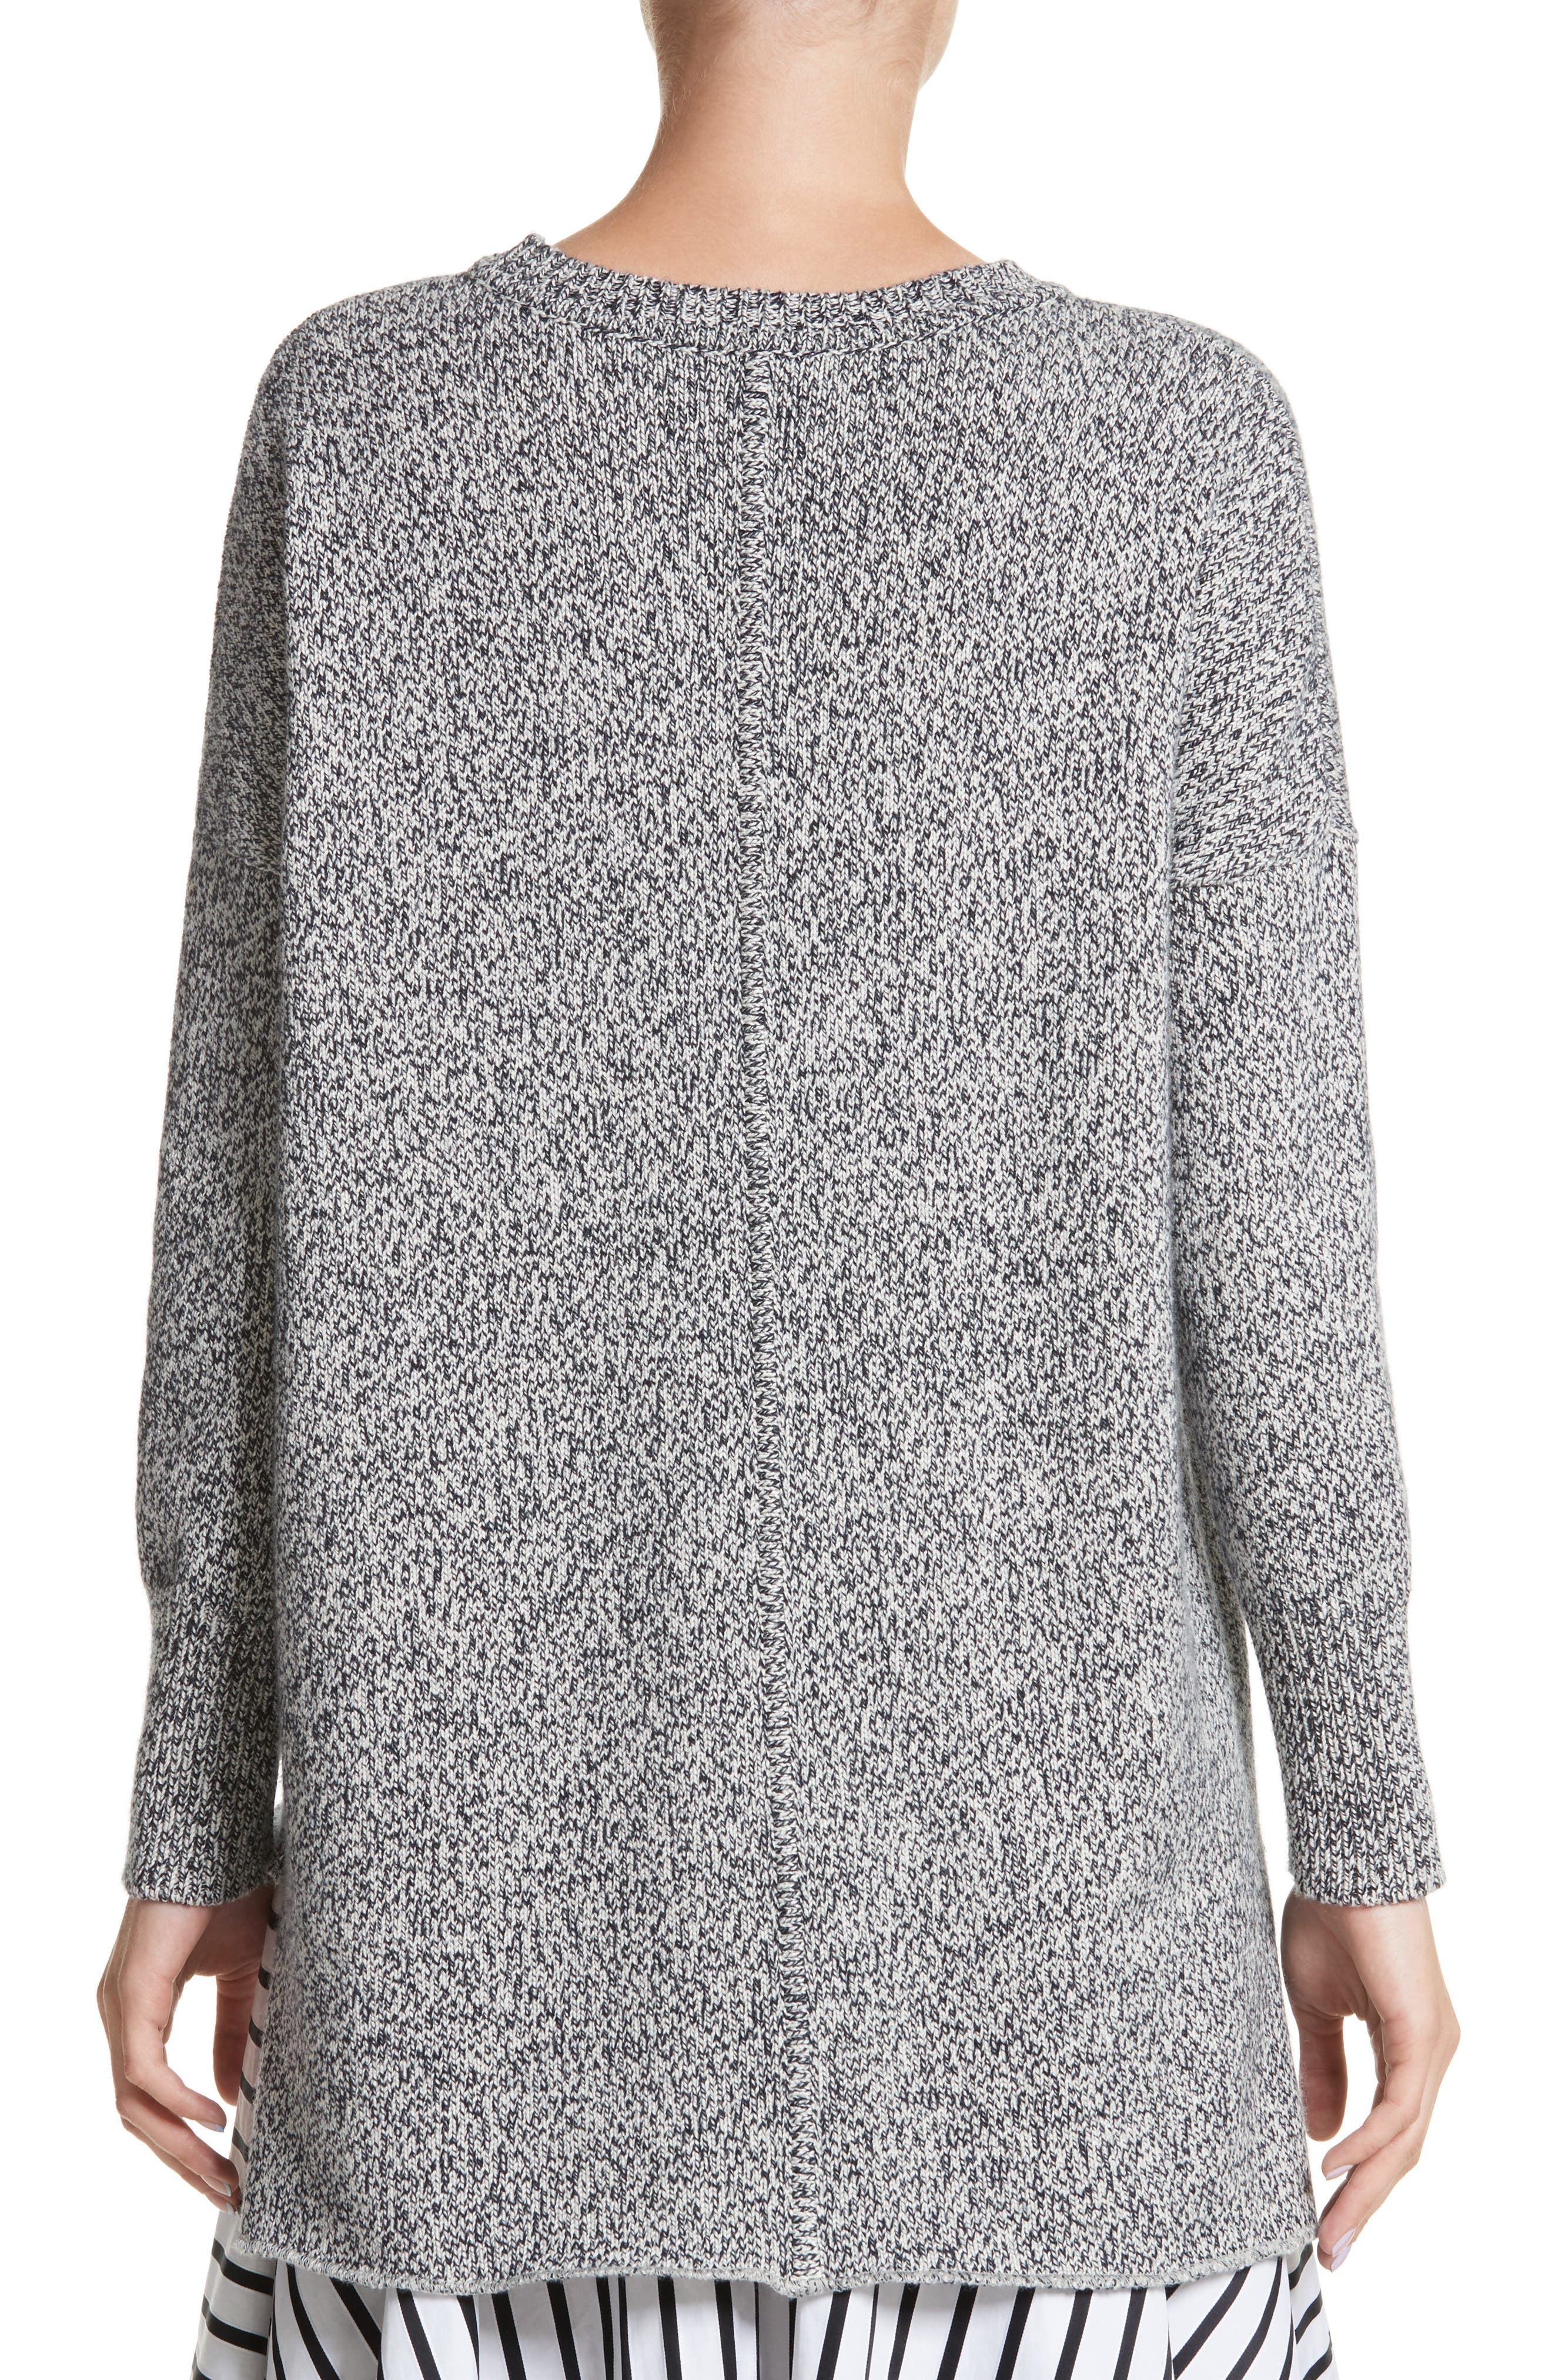 Marled Cotton, Cashmere & Silk Sweater,                             Alternate thumbnail 2, color,                             020